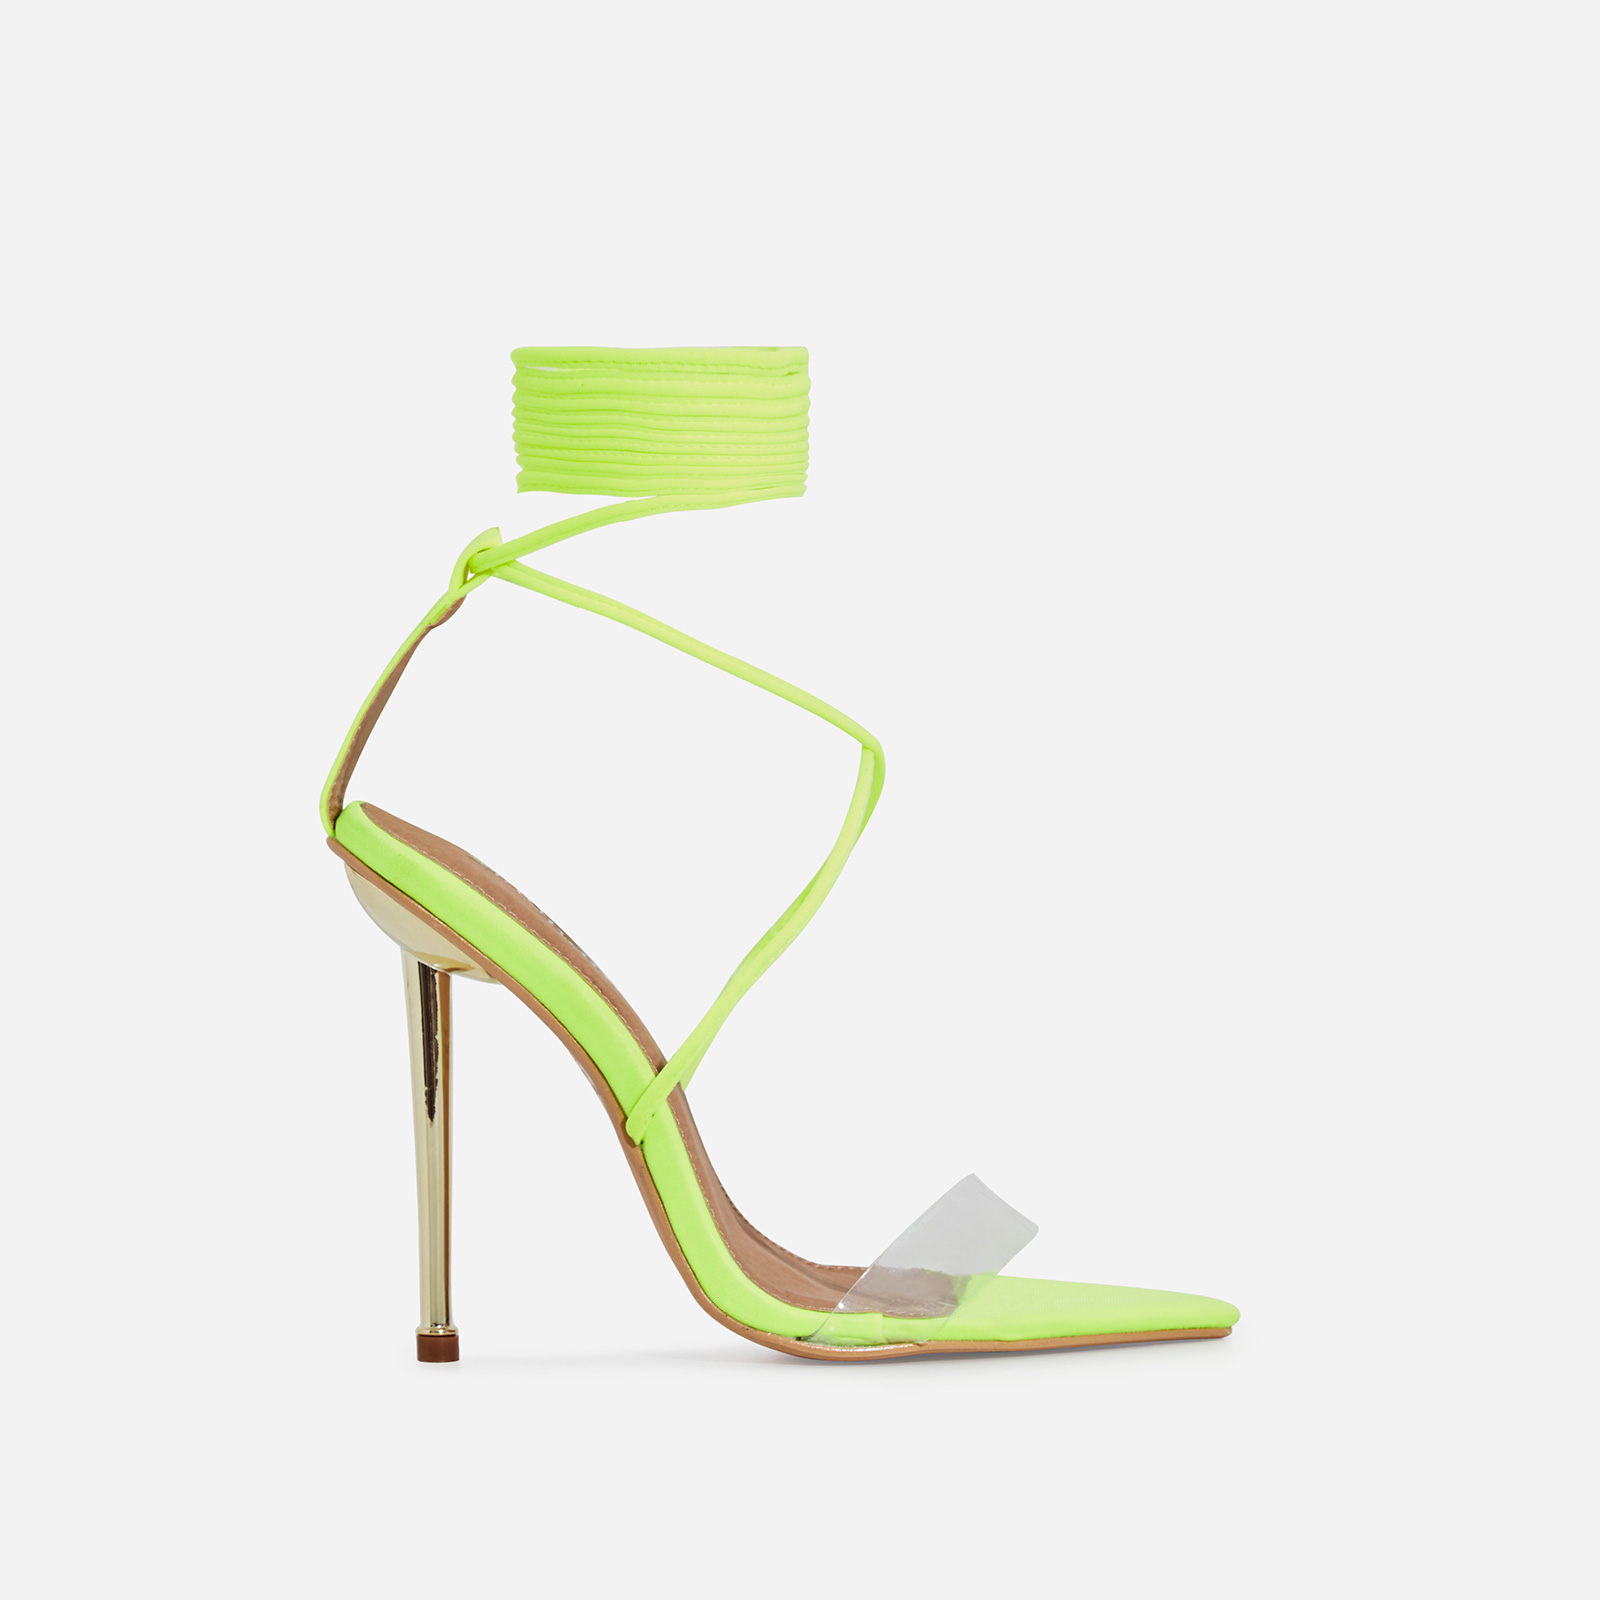 Nobu Pointed Toe Perspex Lace Up Heel In Neon Yellow Lycra